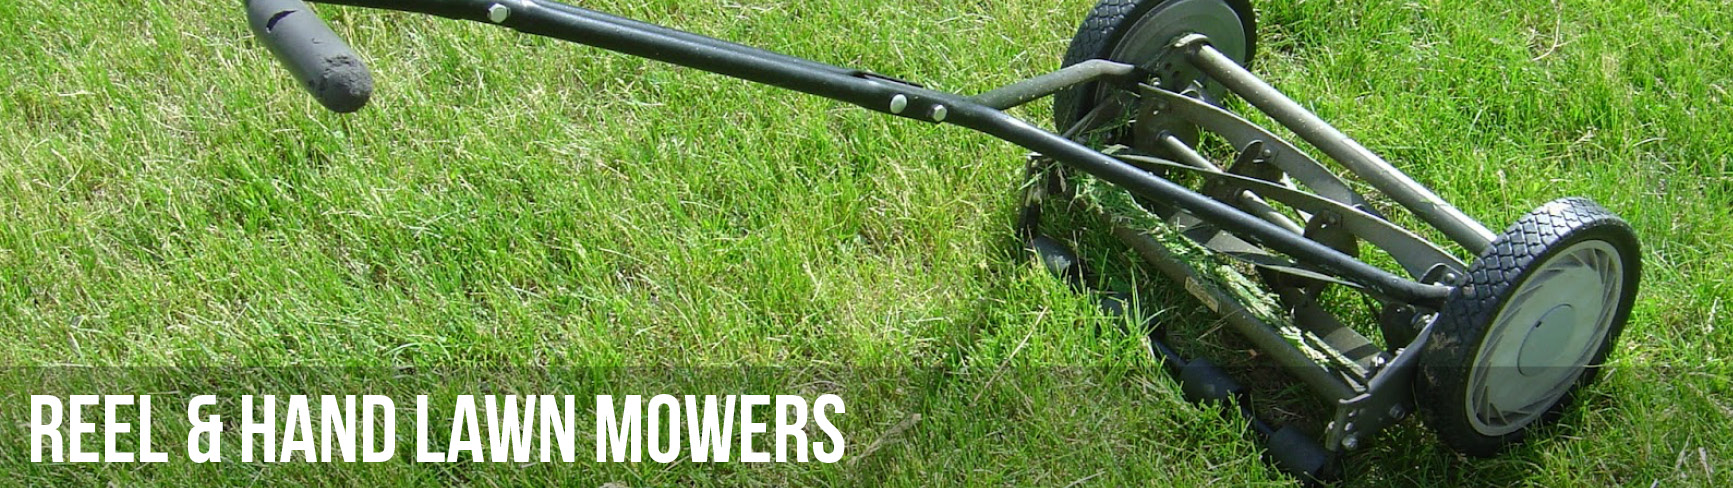 category_top_lawnmowers_reel